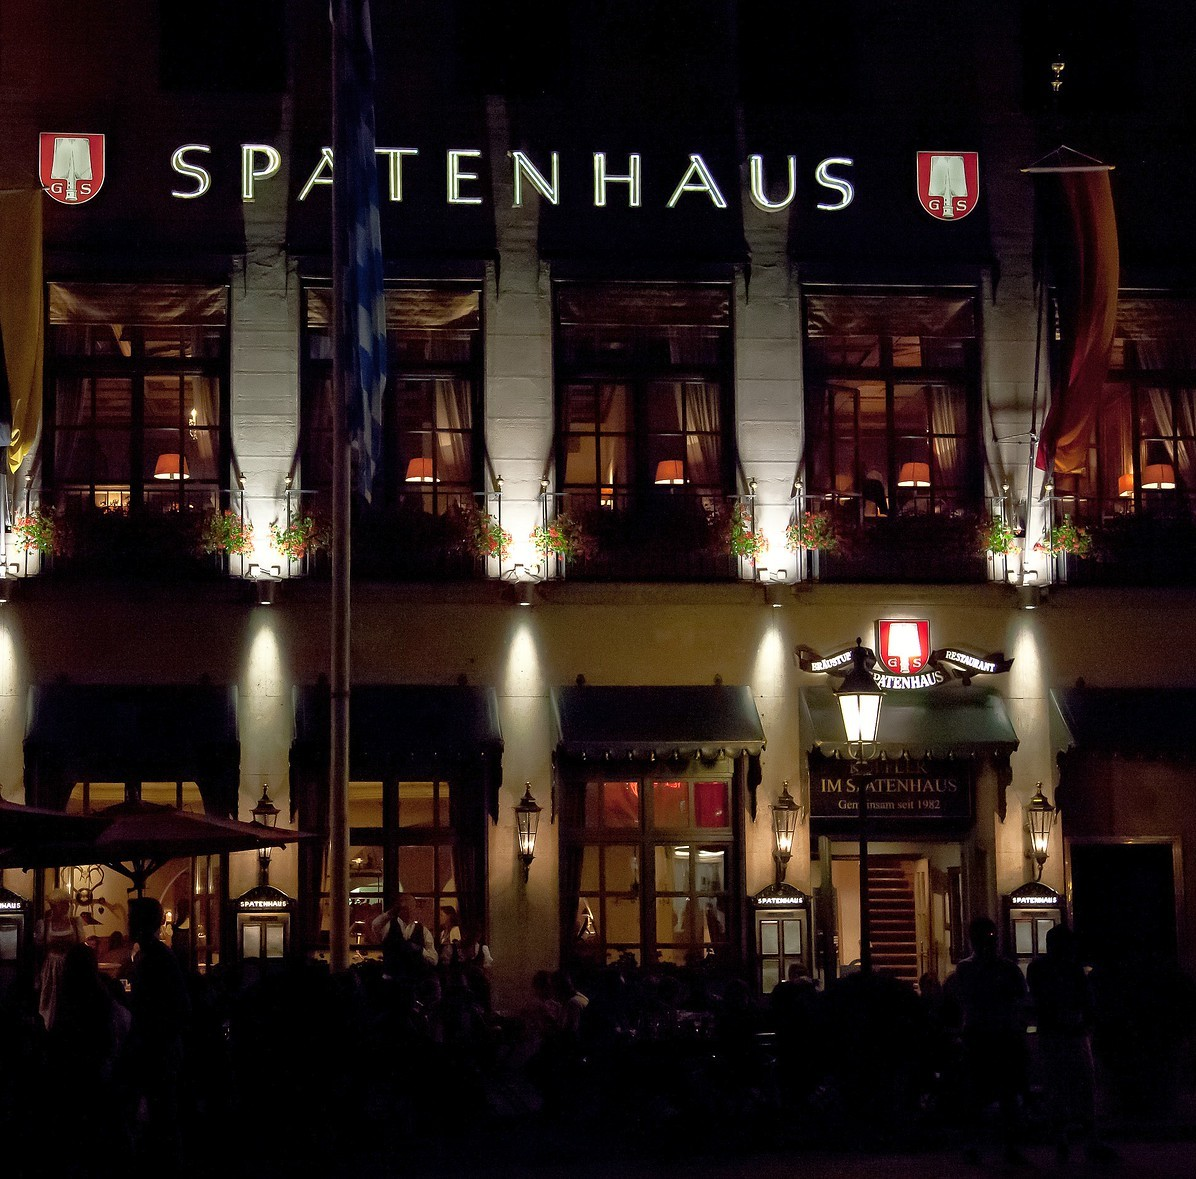 Spatenhaus an der Oper at night